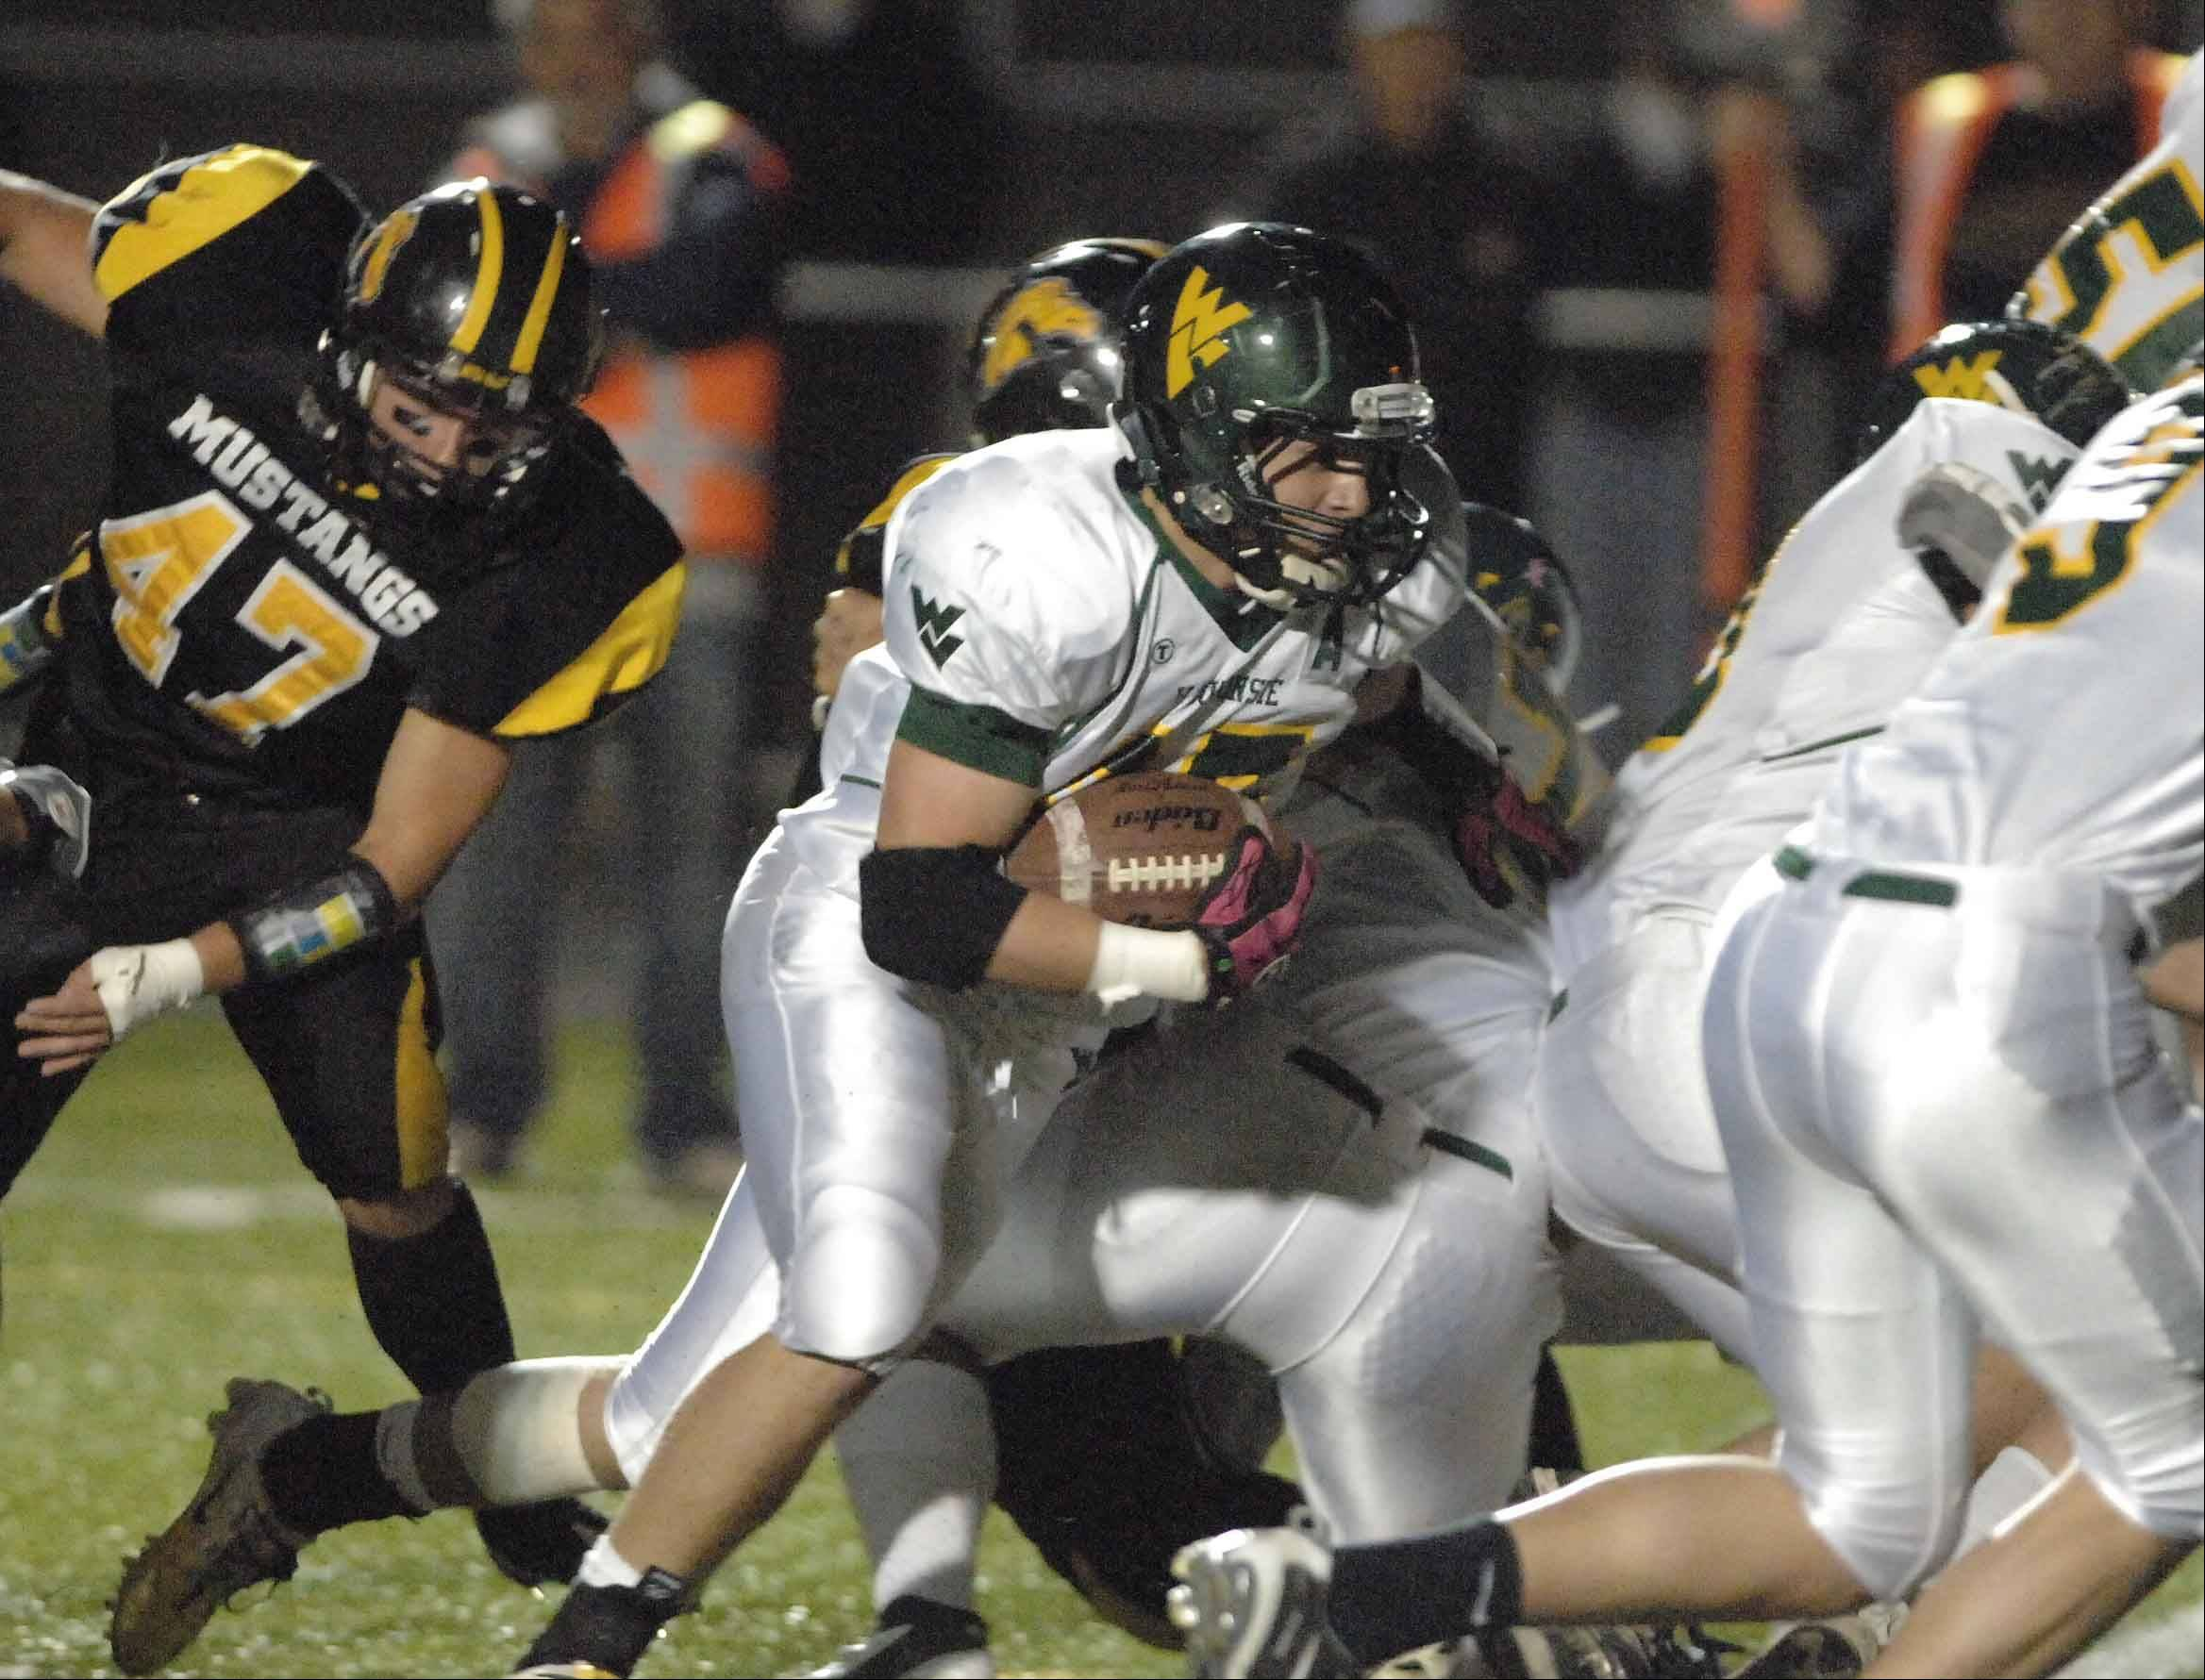 Austin Guido of Waubonsie on the run during the Waubonsie Valley at Metea Valley football game Friday.